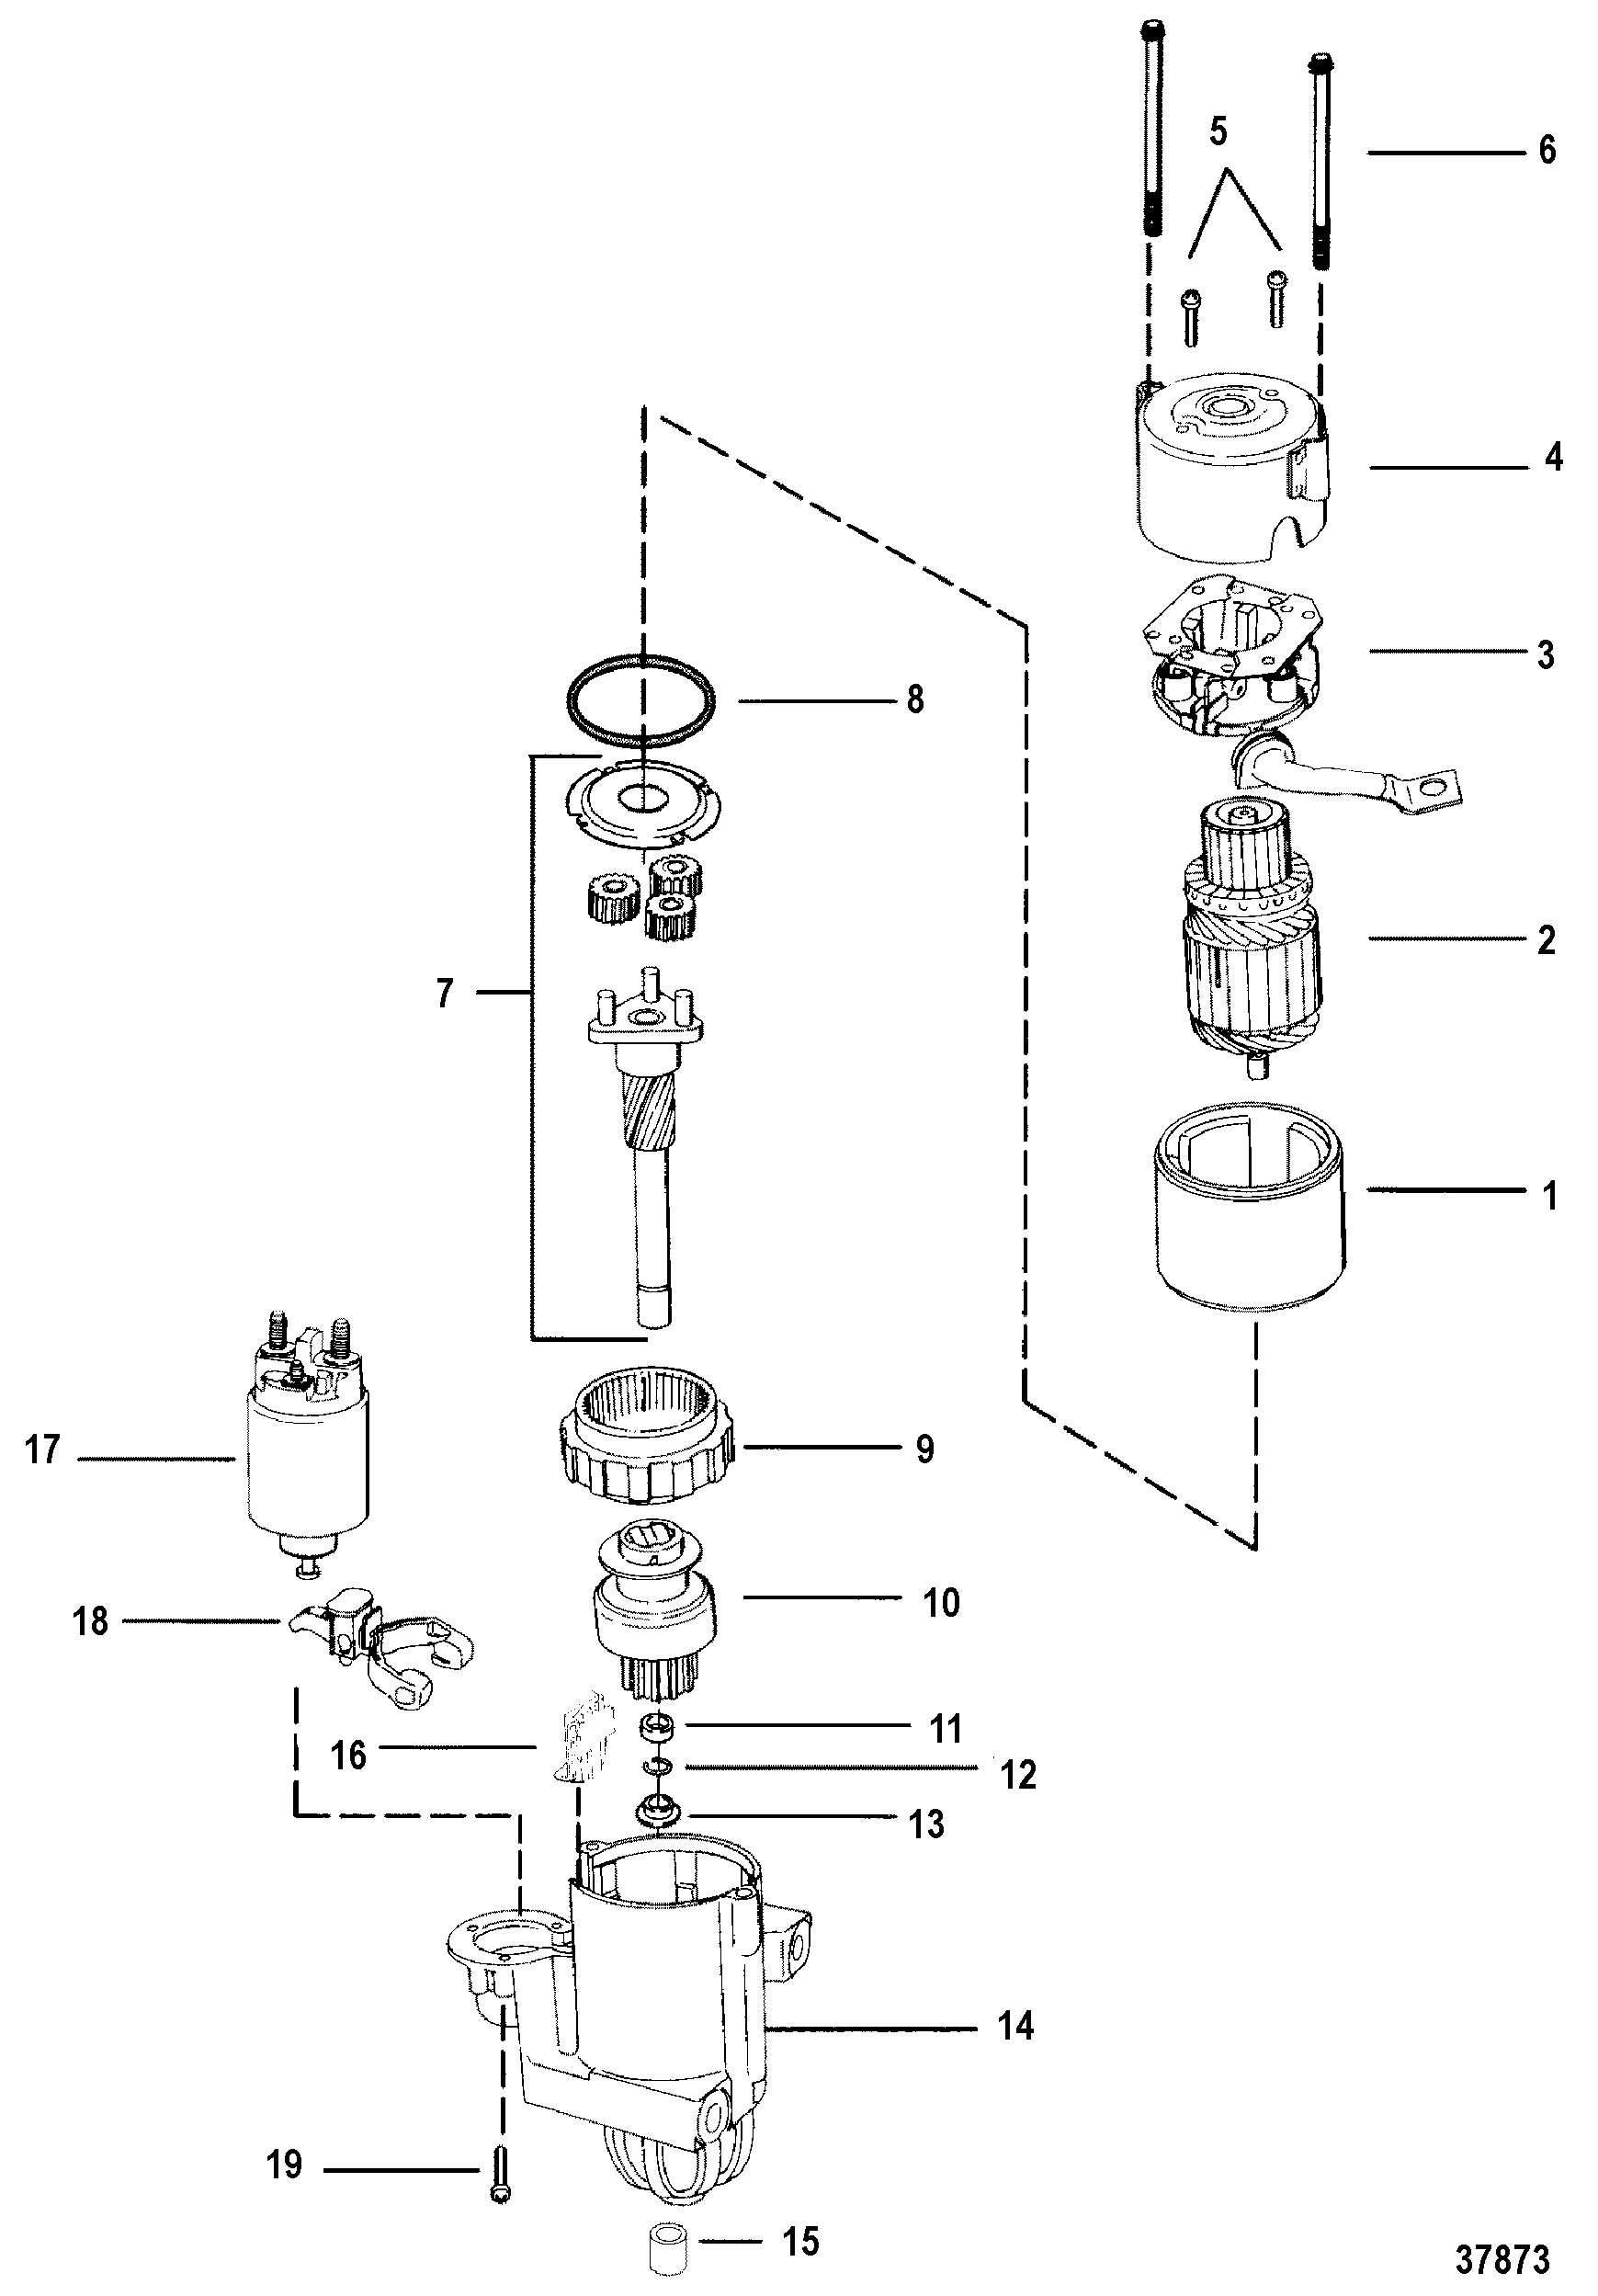 ignition systems and how they work